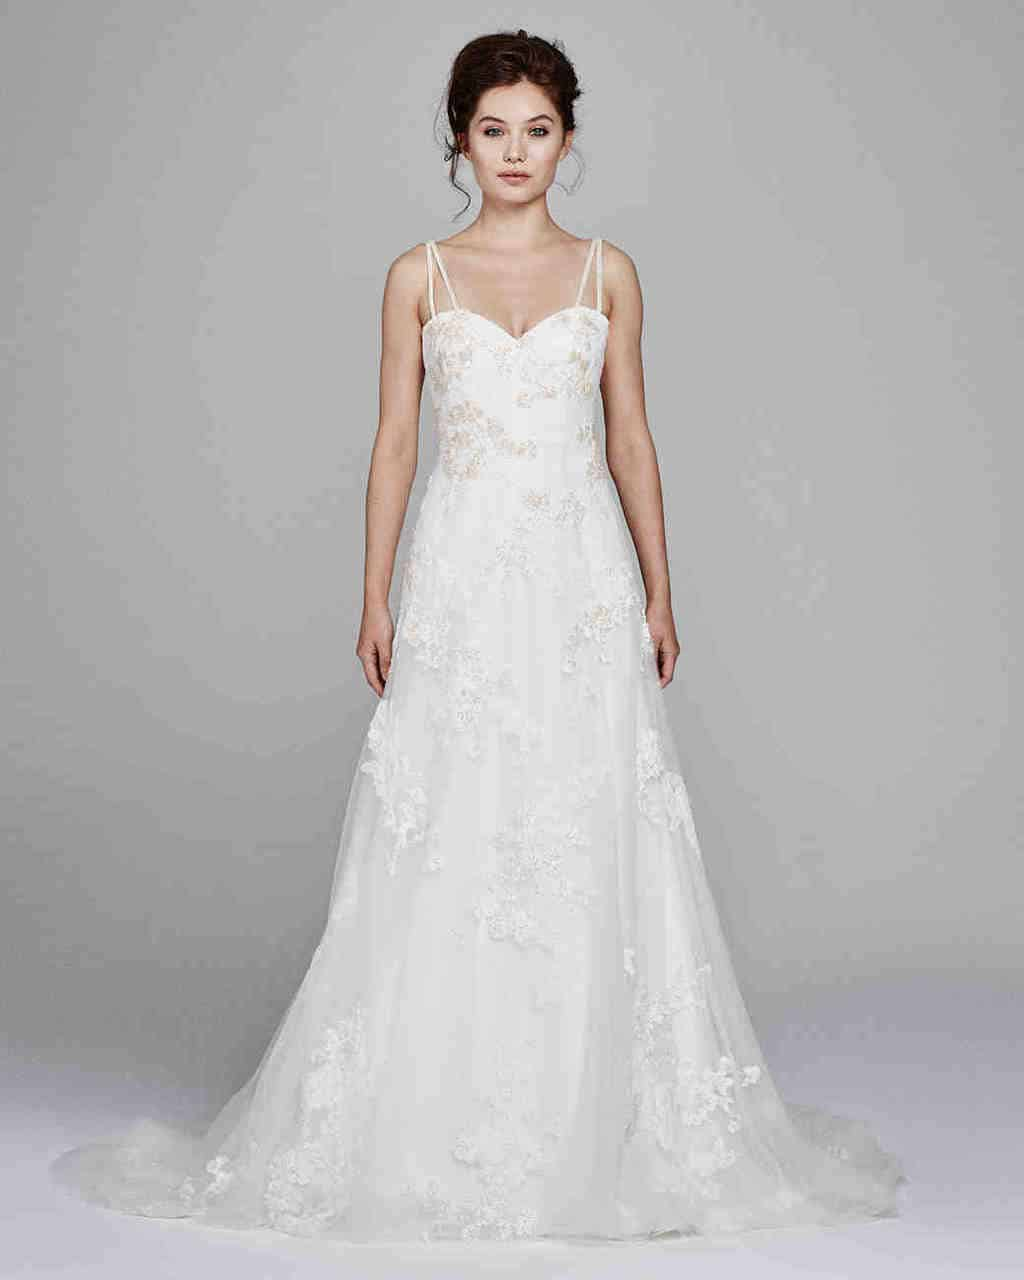 kelly-faetanini-wedding-dress-fall2017-007_vert